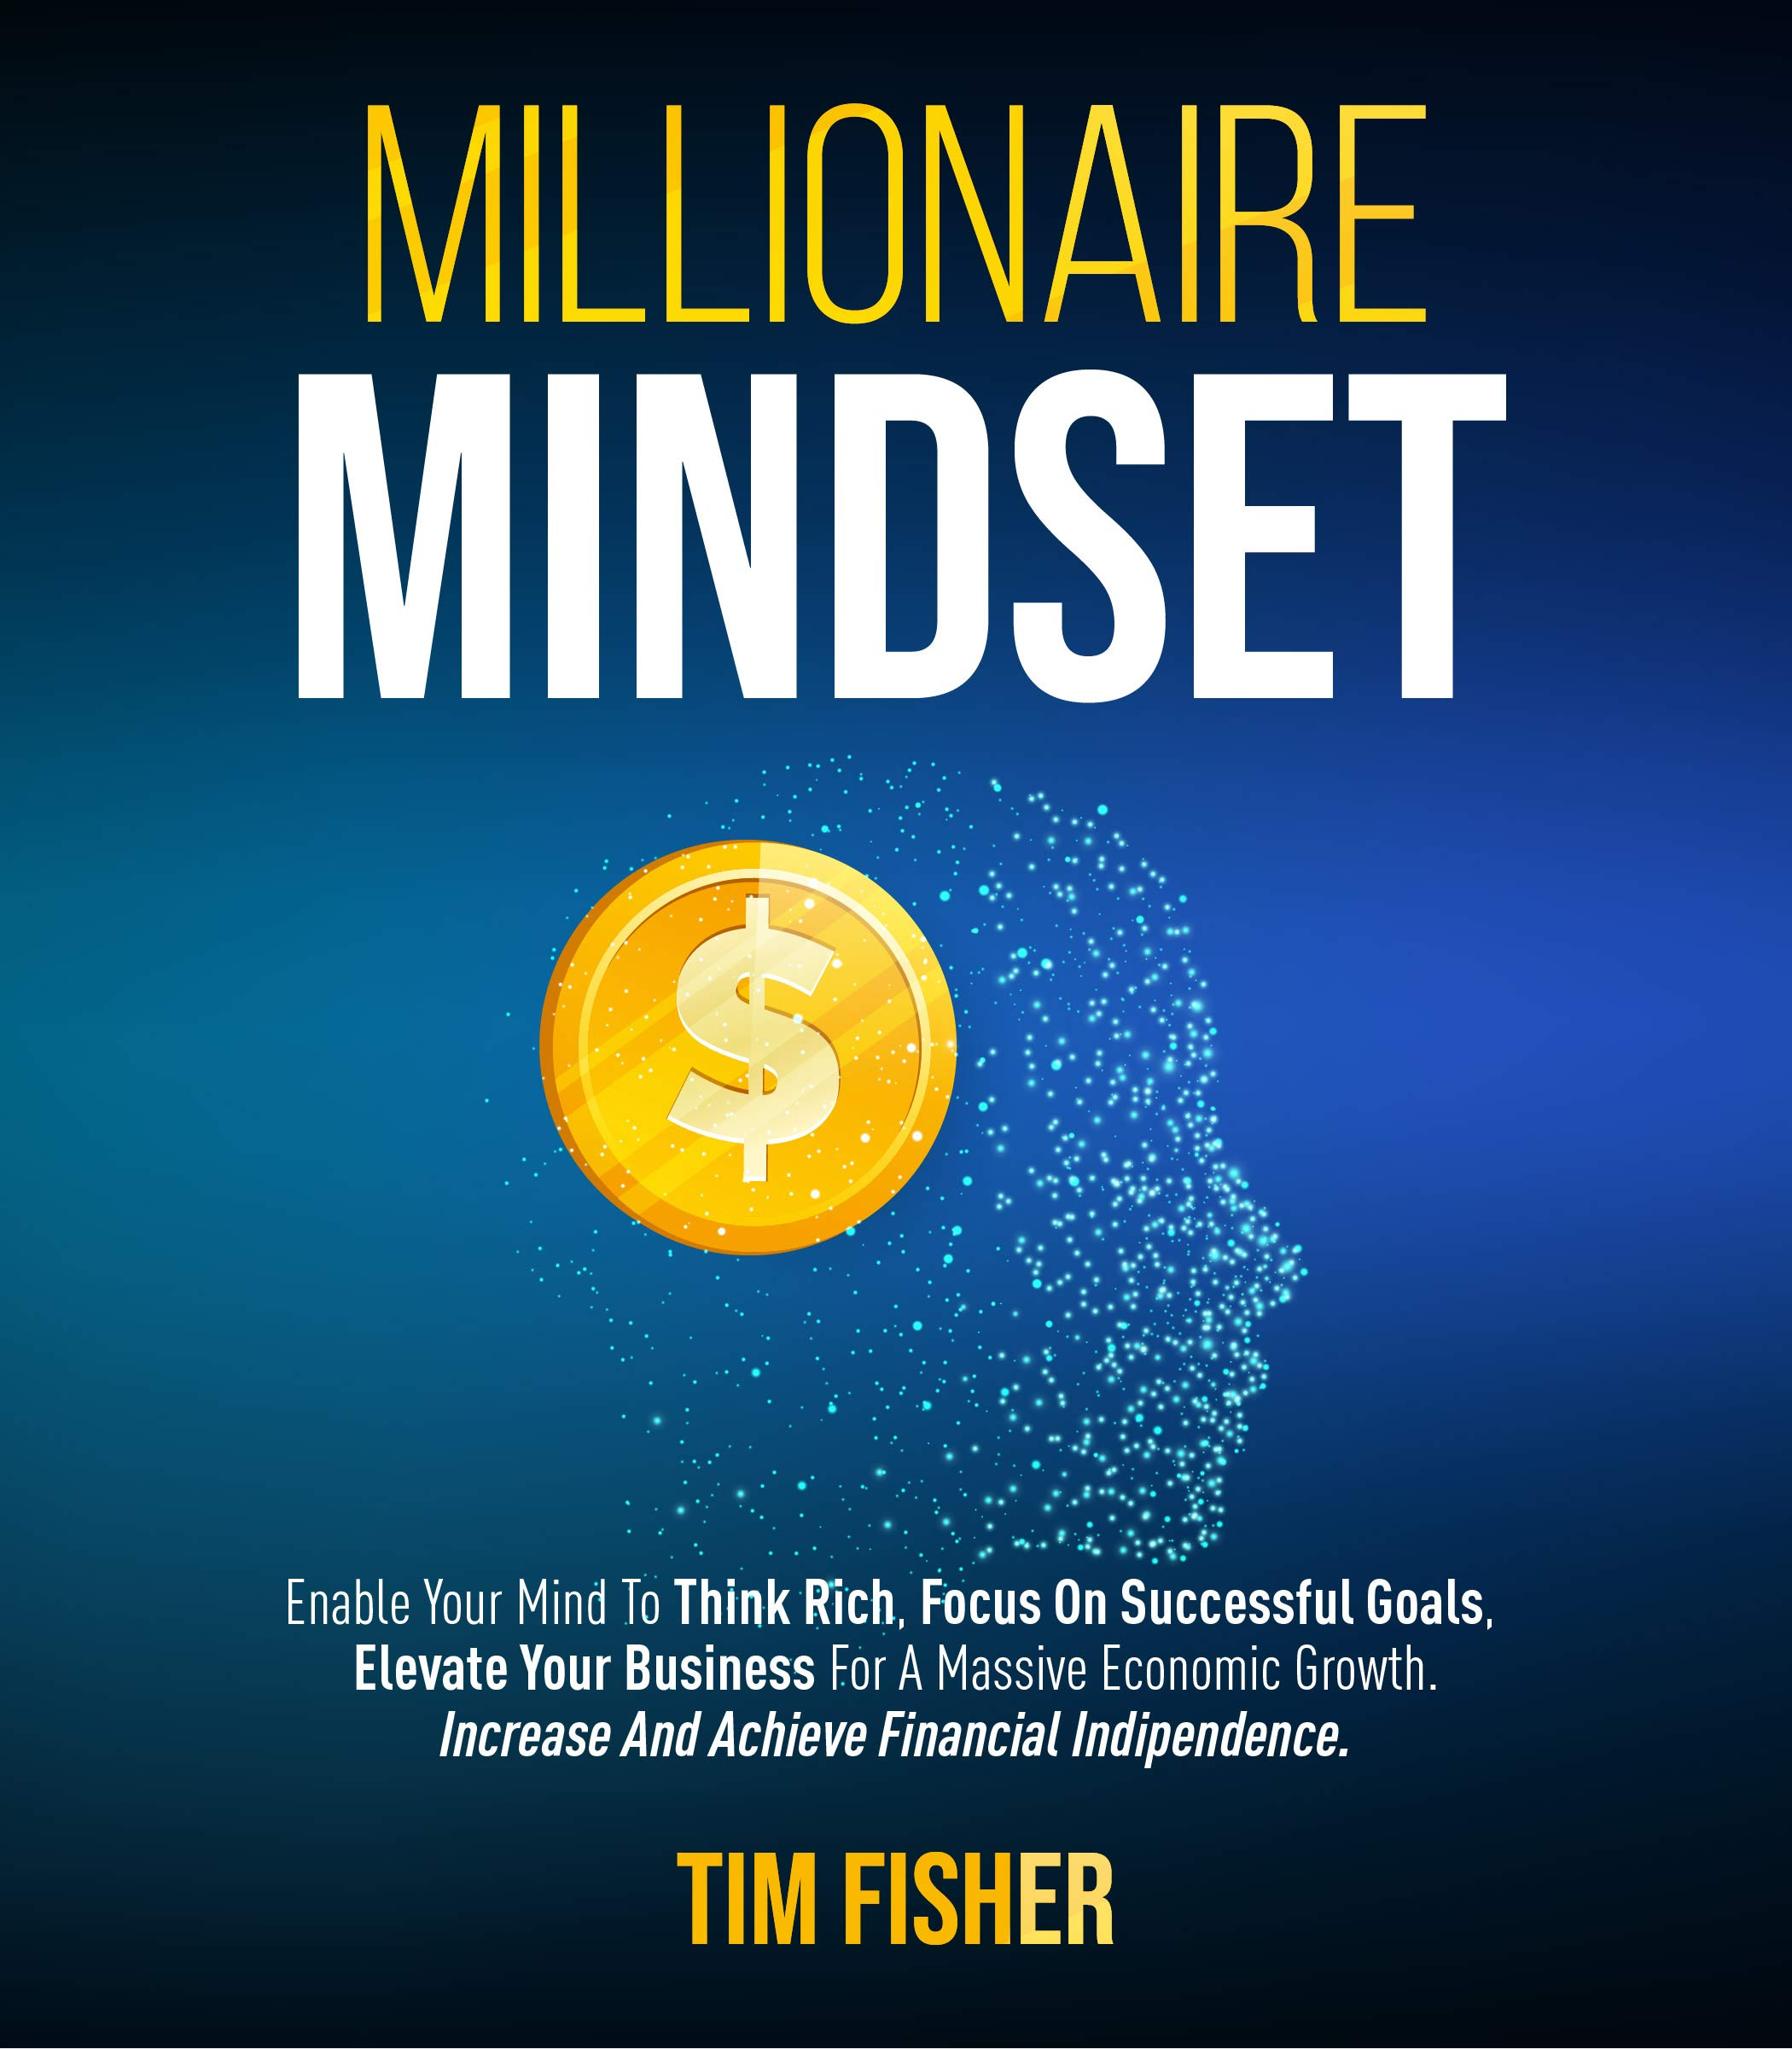 Millionaire Mindset: Enable Your Mind To Think Rich, Focus On Successful Goals, Elevate Your Business For A Massive Economic Growth. Increase And Achieve Financial Indipendence.